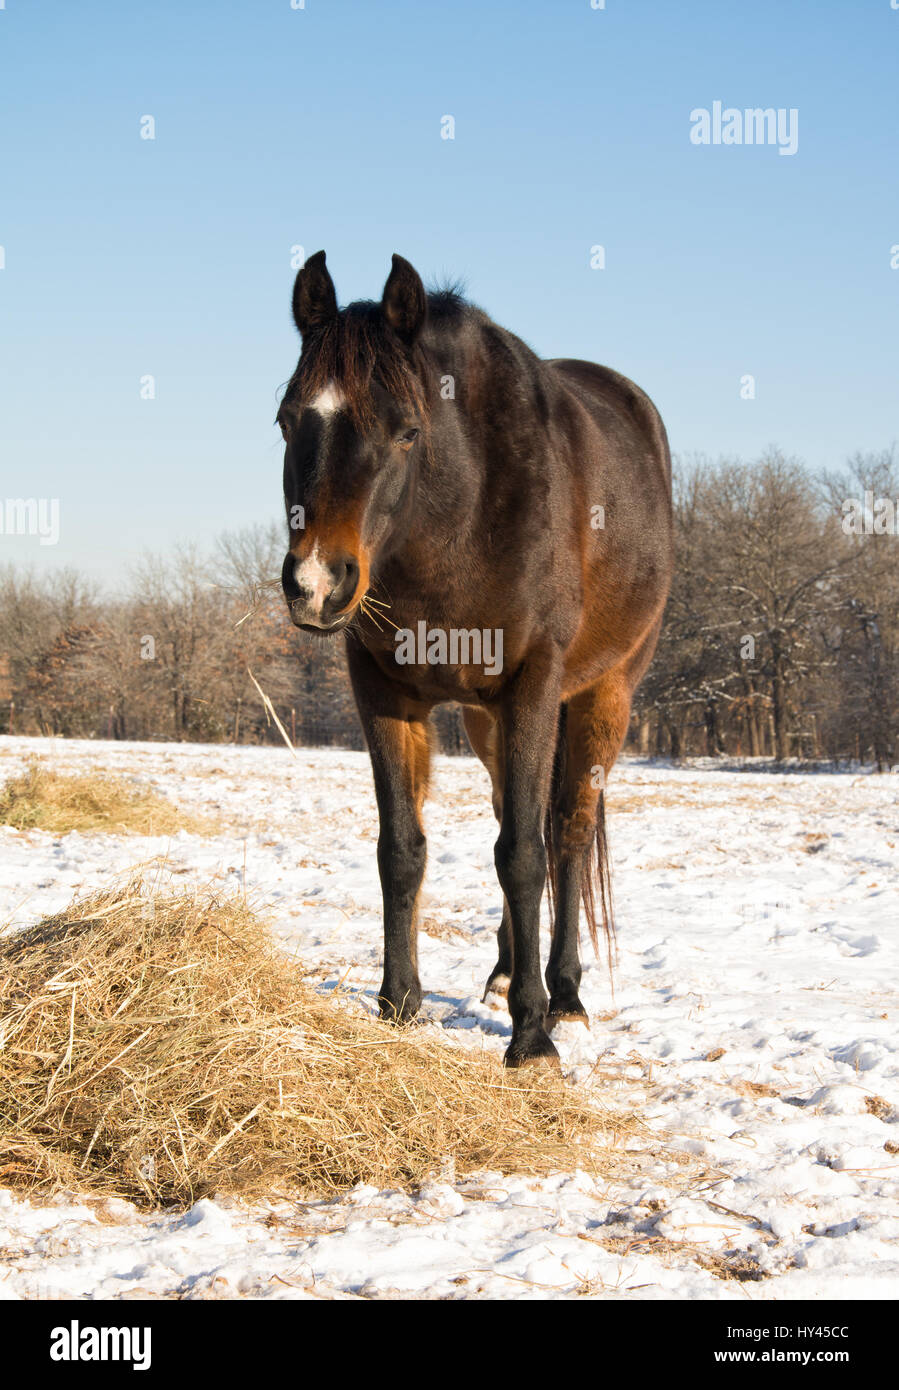 Dark bay horse eating his hay in a snowy pasture on a sunny winter day - Stock Image